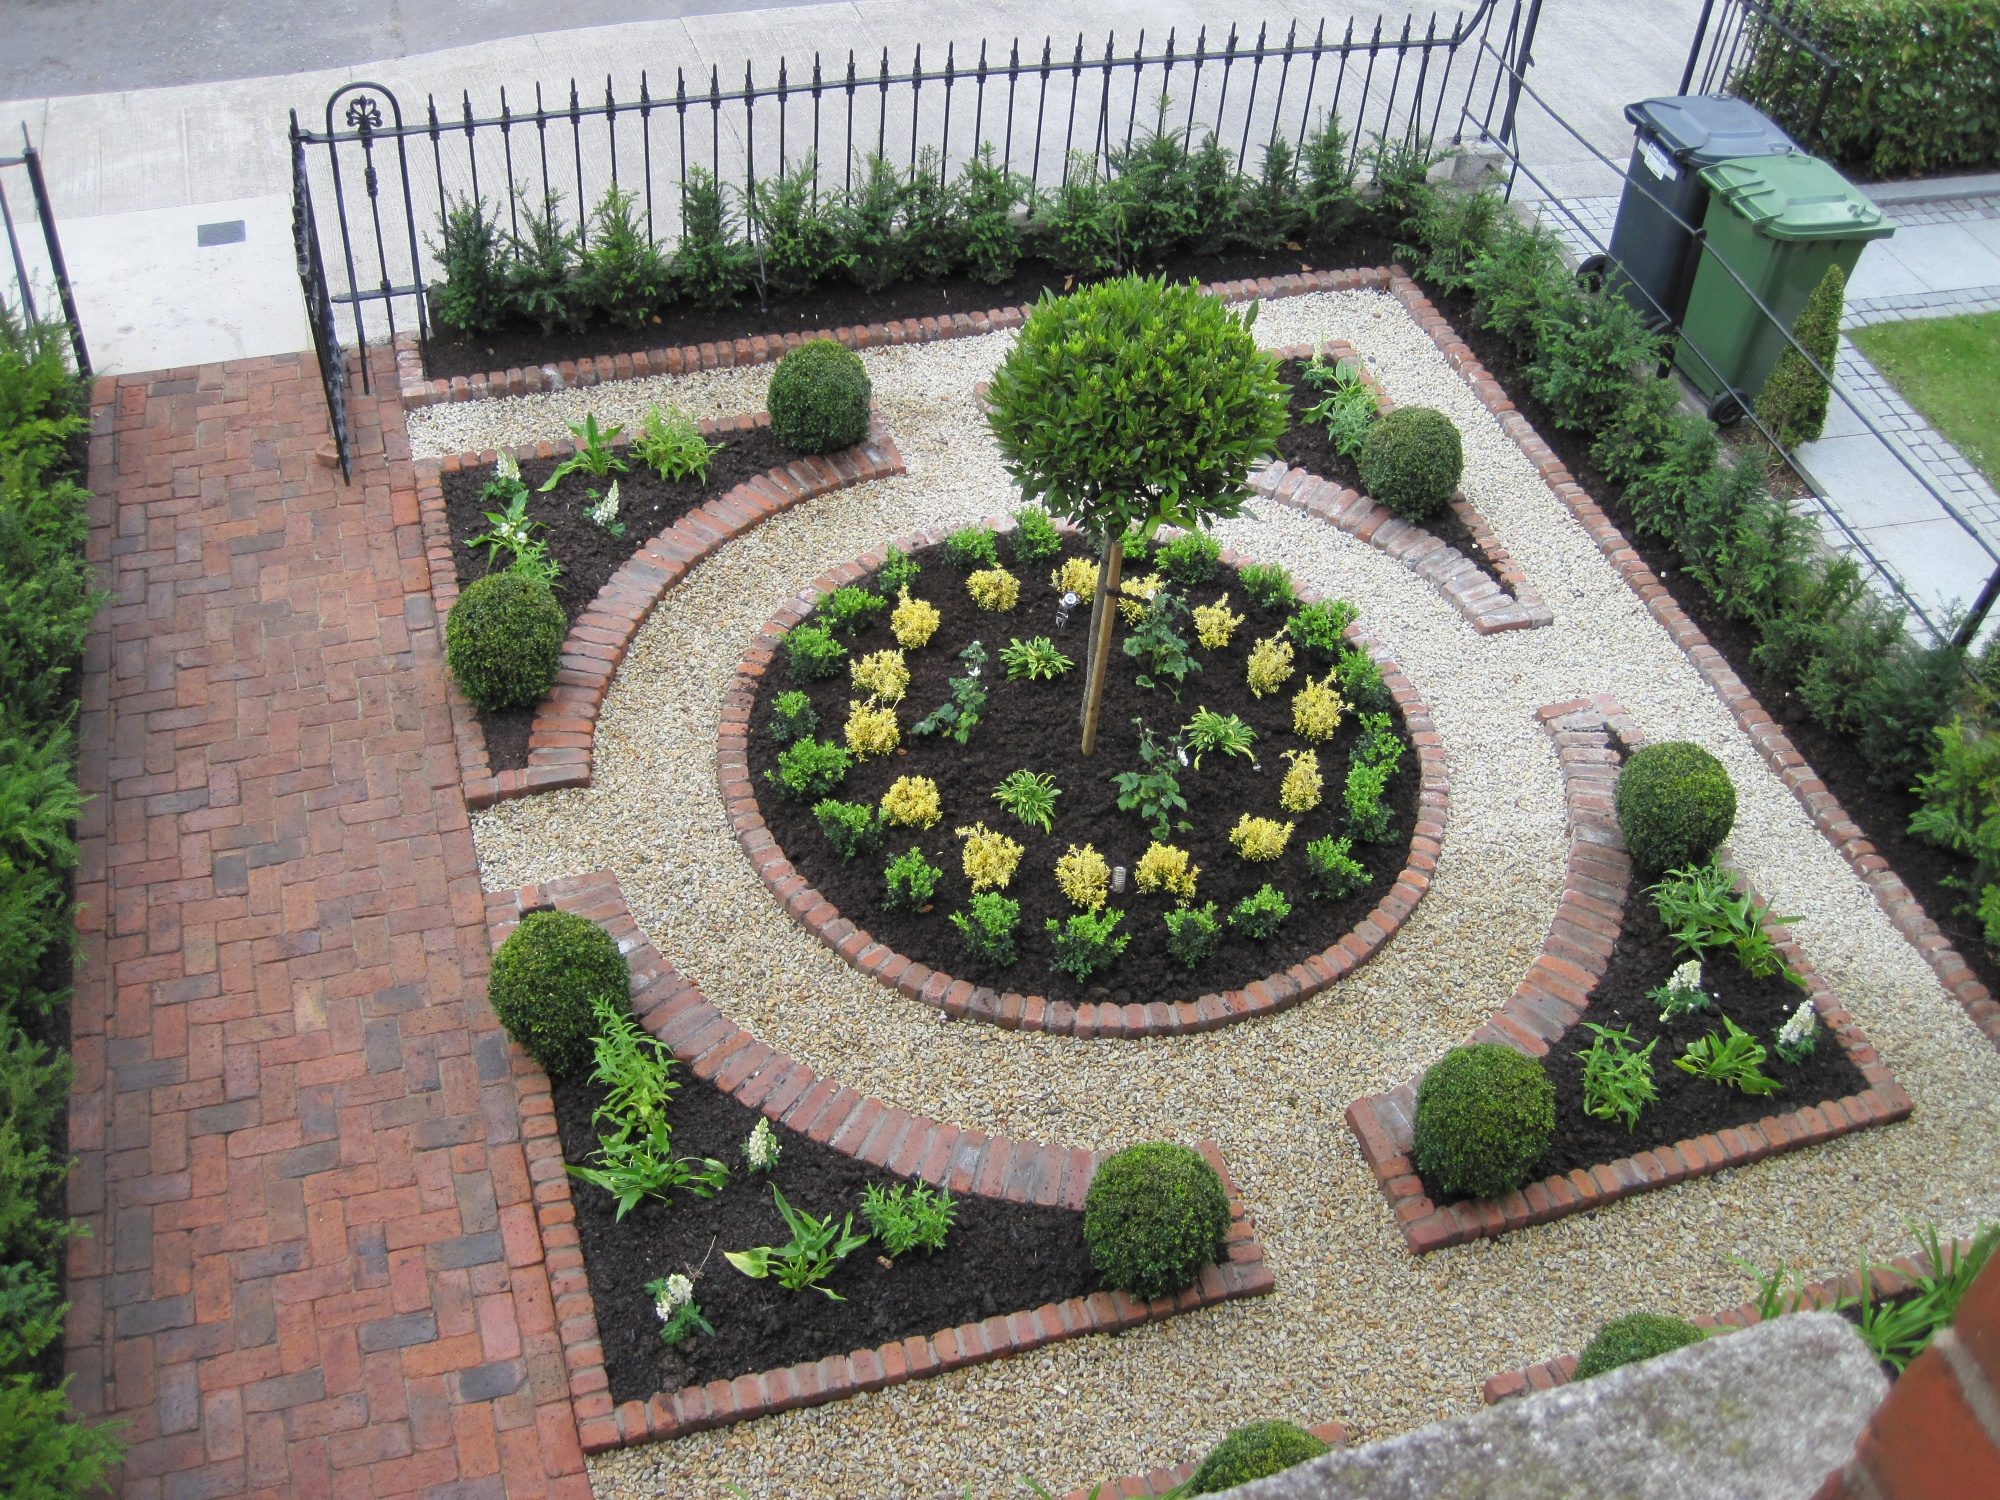 Garden design ideas inspiration advice for all styles for Top garden designers